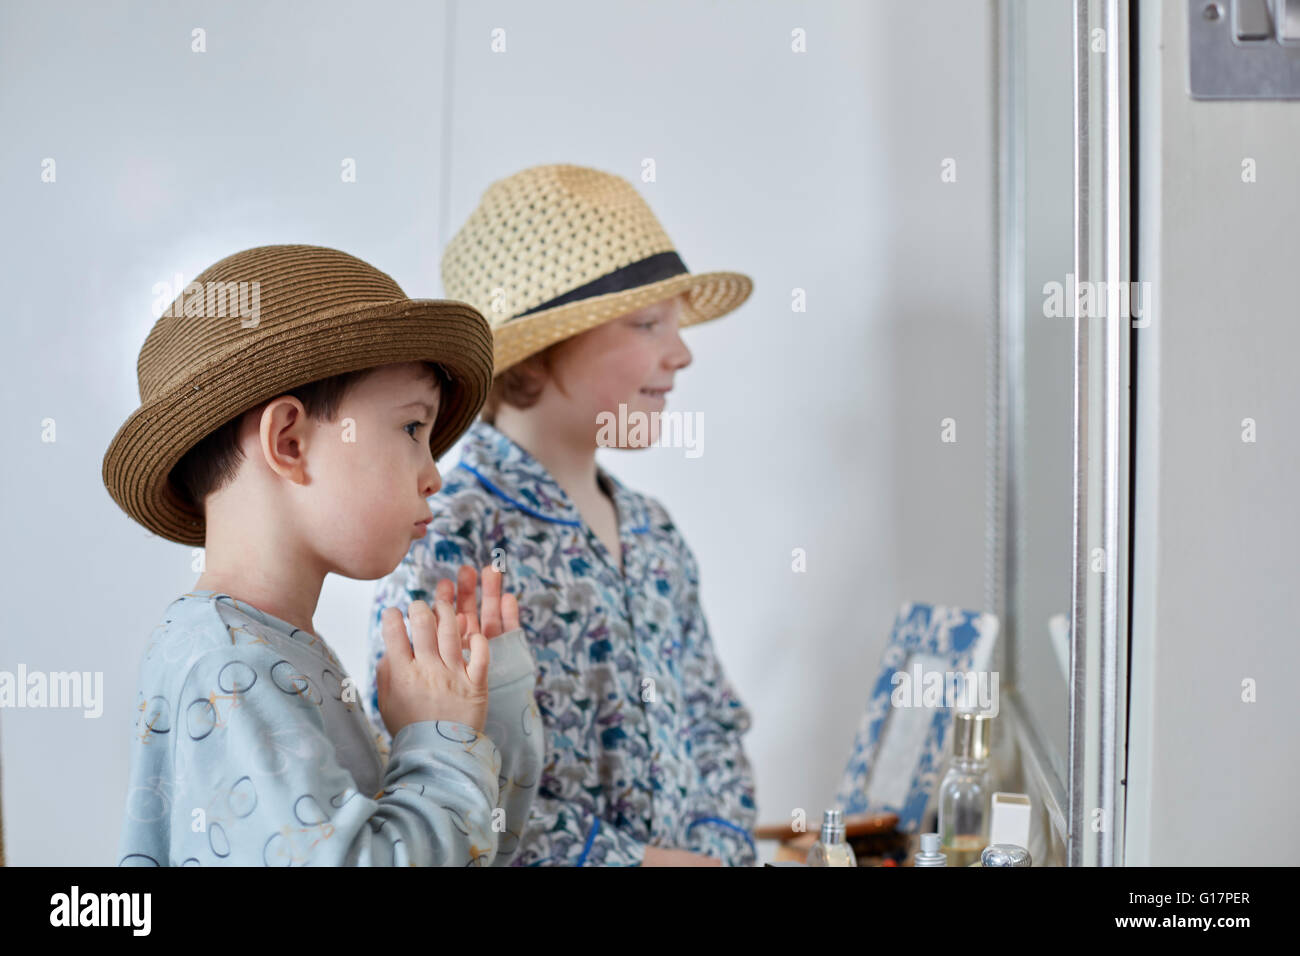 Boys playing dressup in bedroom Stock Photo Royalty Free Image